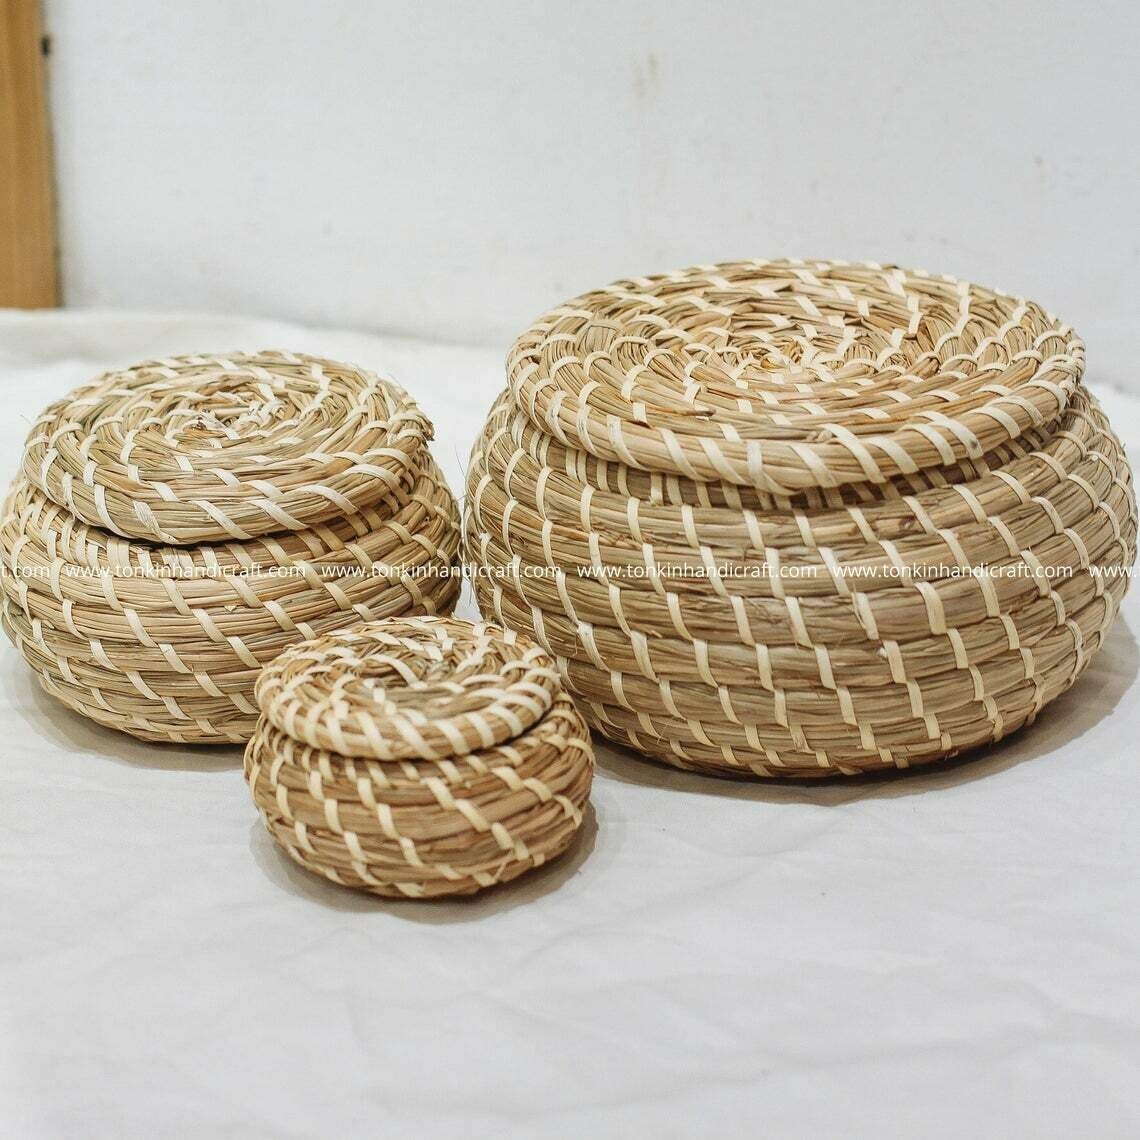 Set of 3 Braided Handwoven Natural Round Holder basket with lid